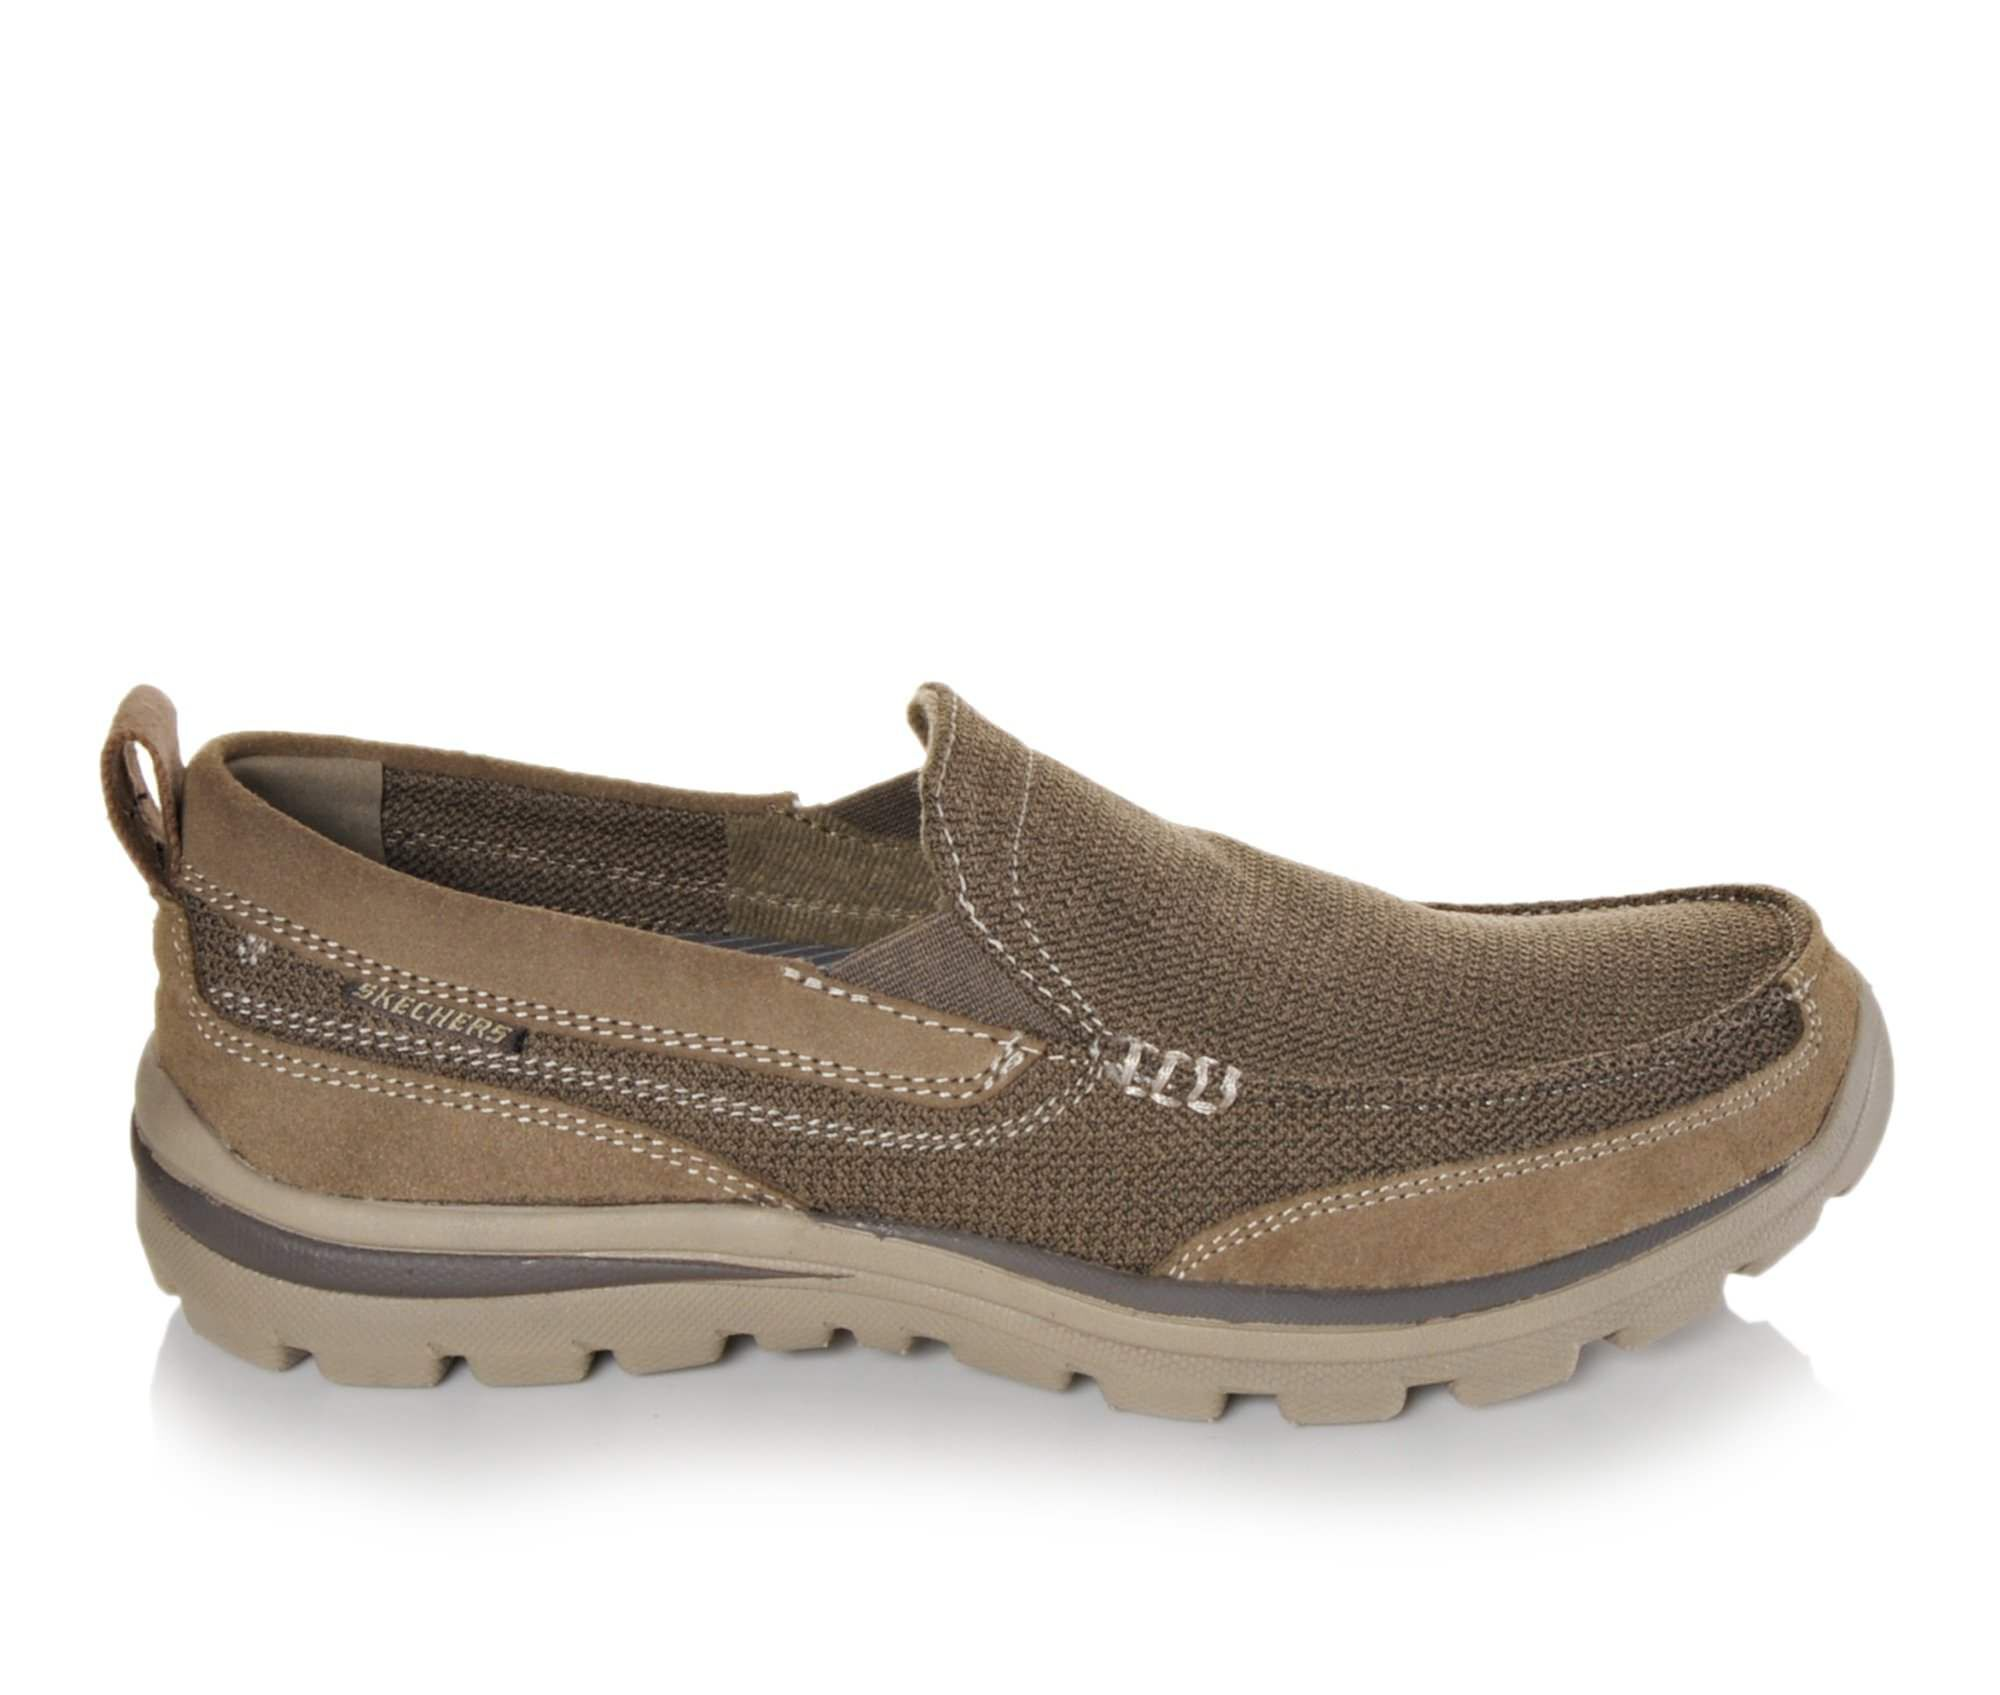 Men's Skechers Milford 64365 Casual Shoes Light Brown